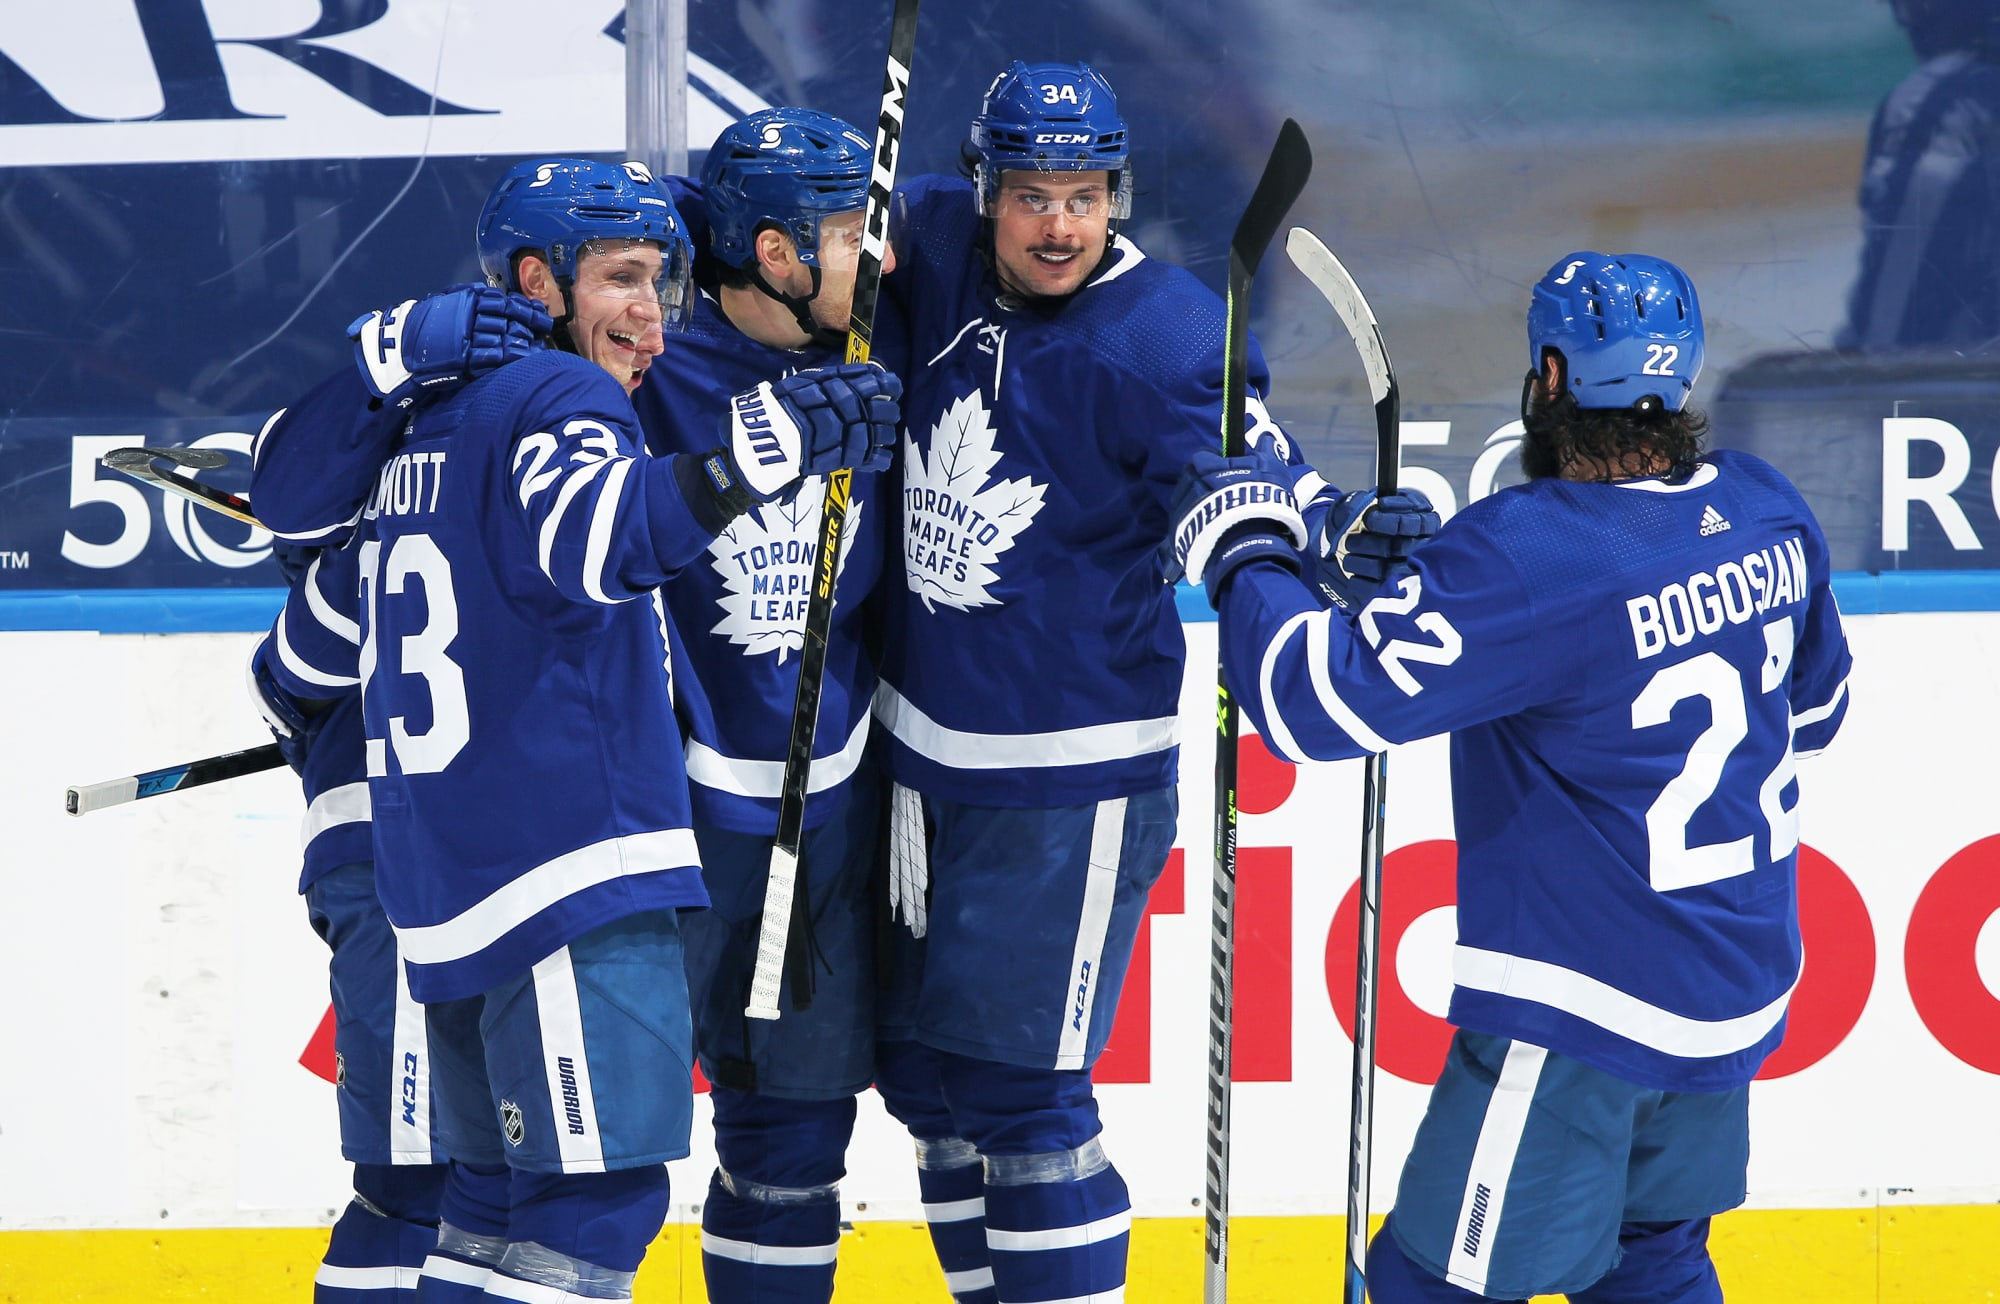 Toronto Maple Leafs Playoff Run Brings Little Excitement